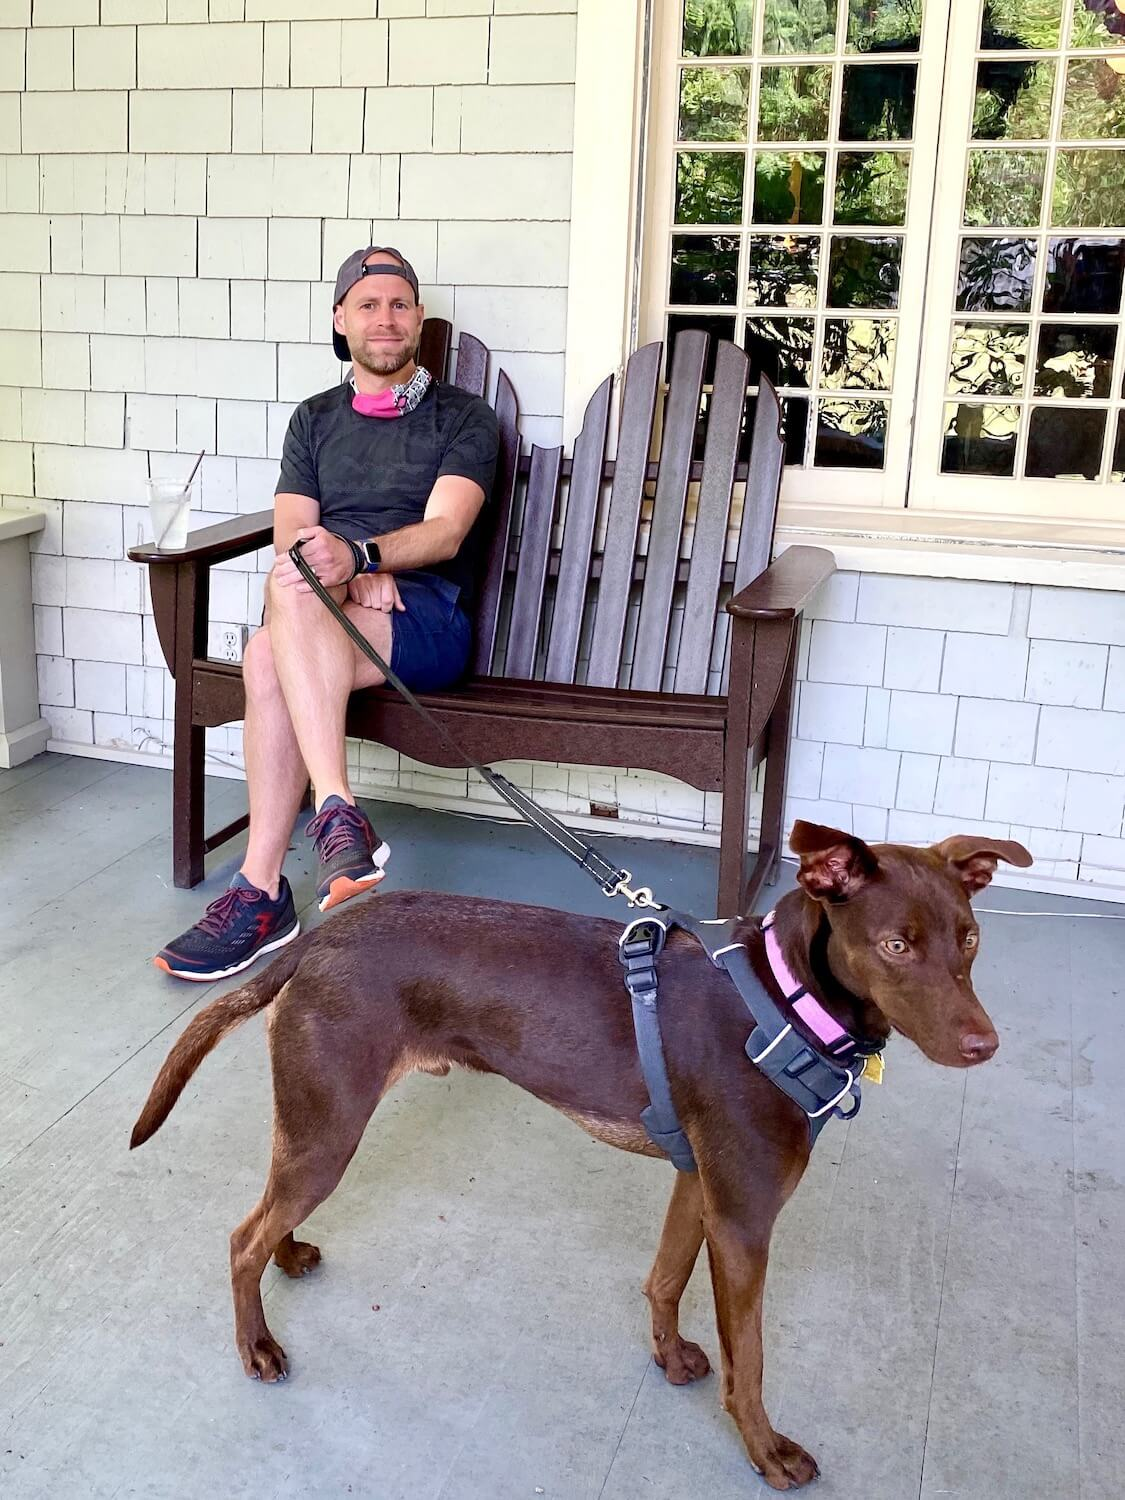 A man sits on a bench on the porch of the Lake Crescent Lodge holding a leash to a sleek brown dog with tall legs and a shiny, healthy looking coat.